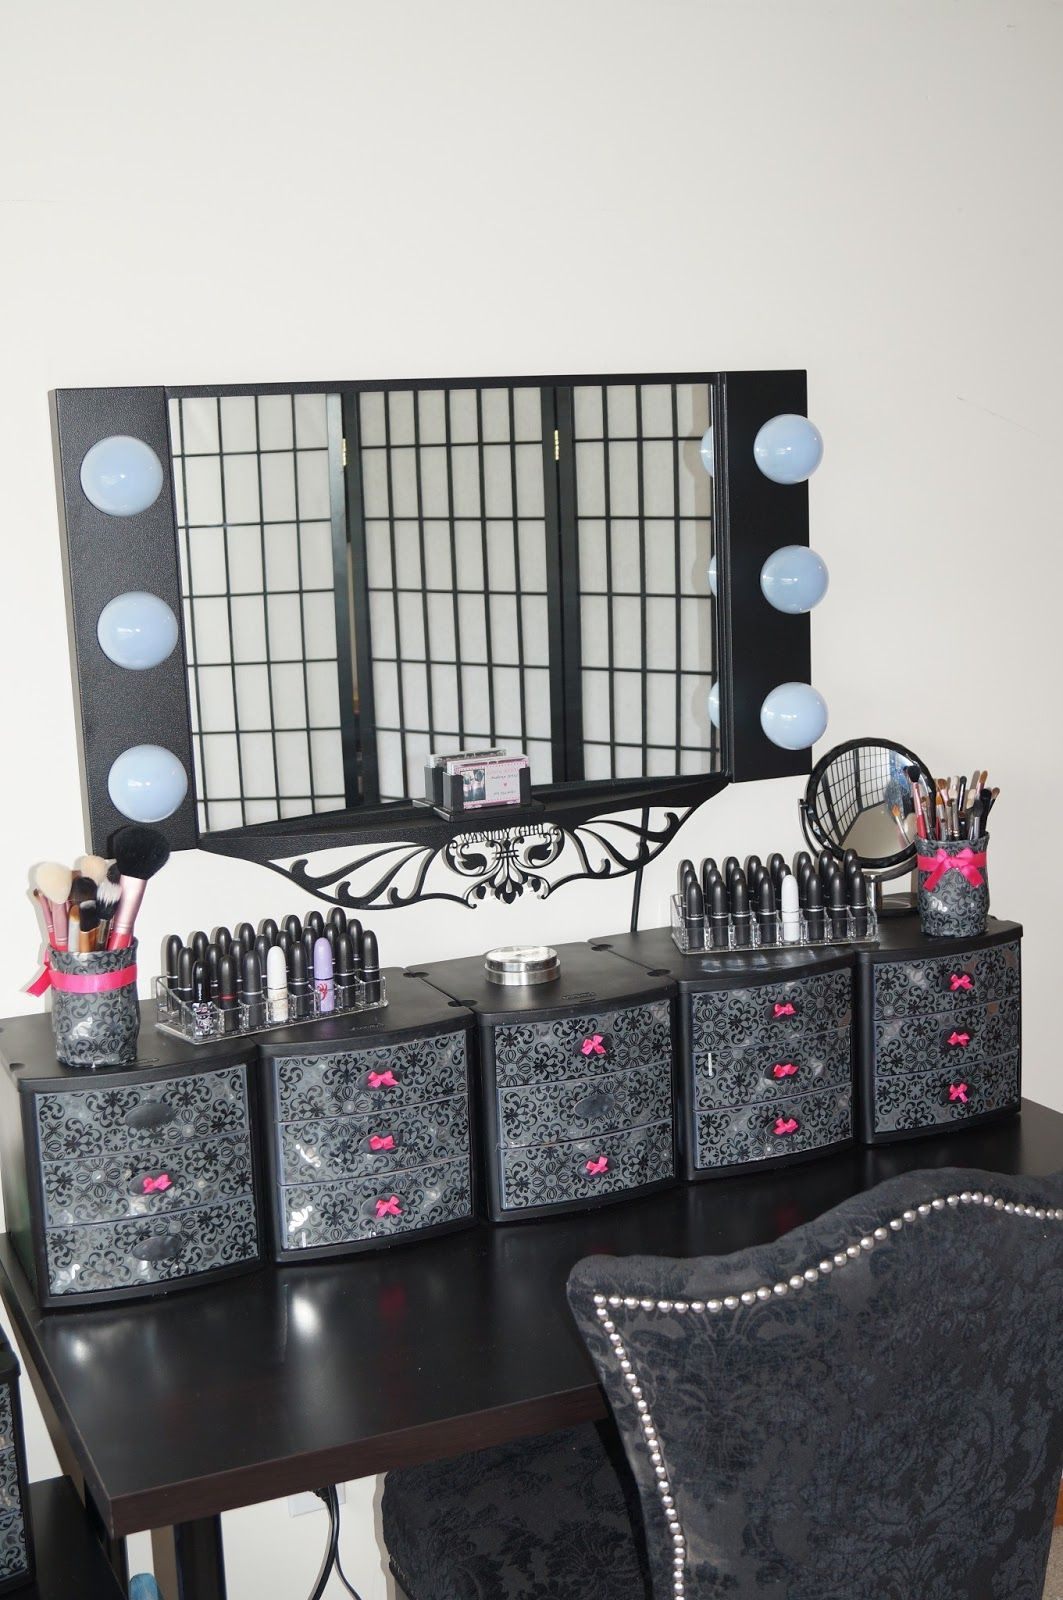 Decorate Plastic Drawer To Make Your Own Make Up Table Decorate Plastic Drawers Diy Vanity